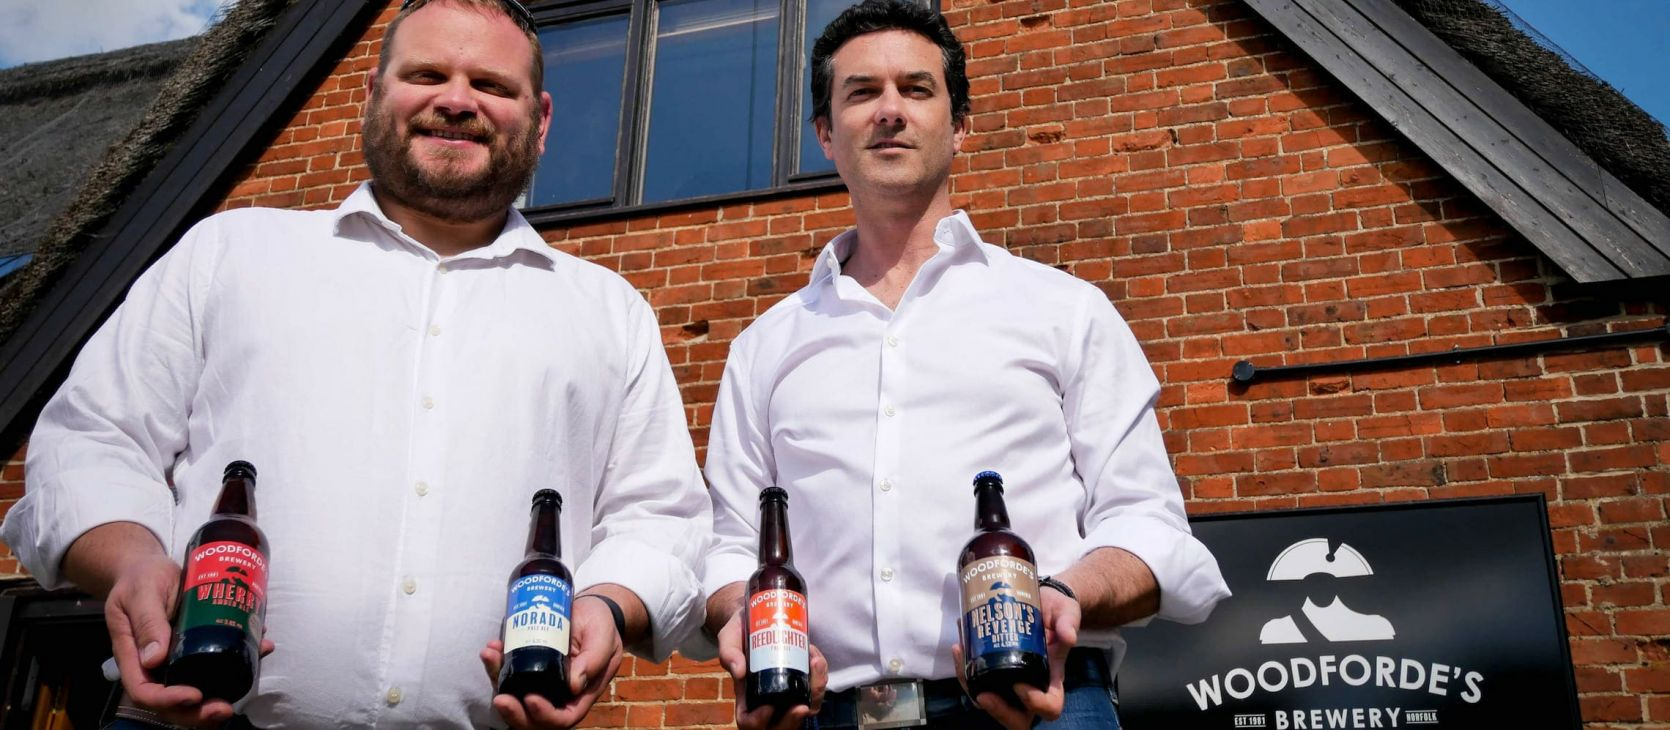 Photo for: Insights on the UK market by James Huges, Woodforde's Brewery